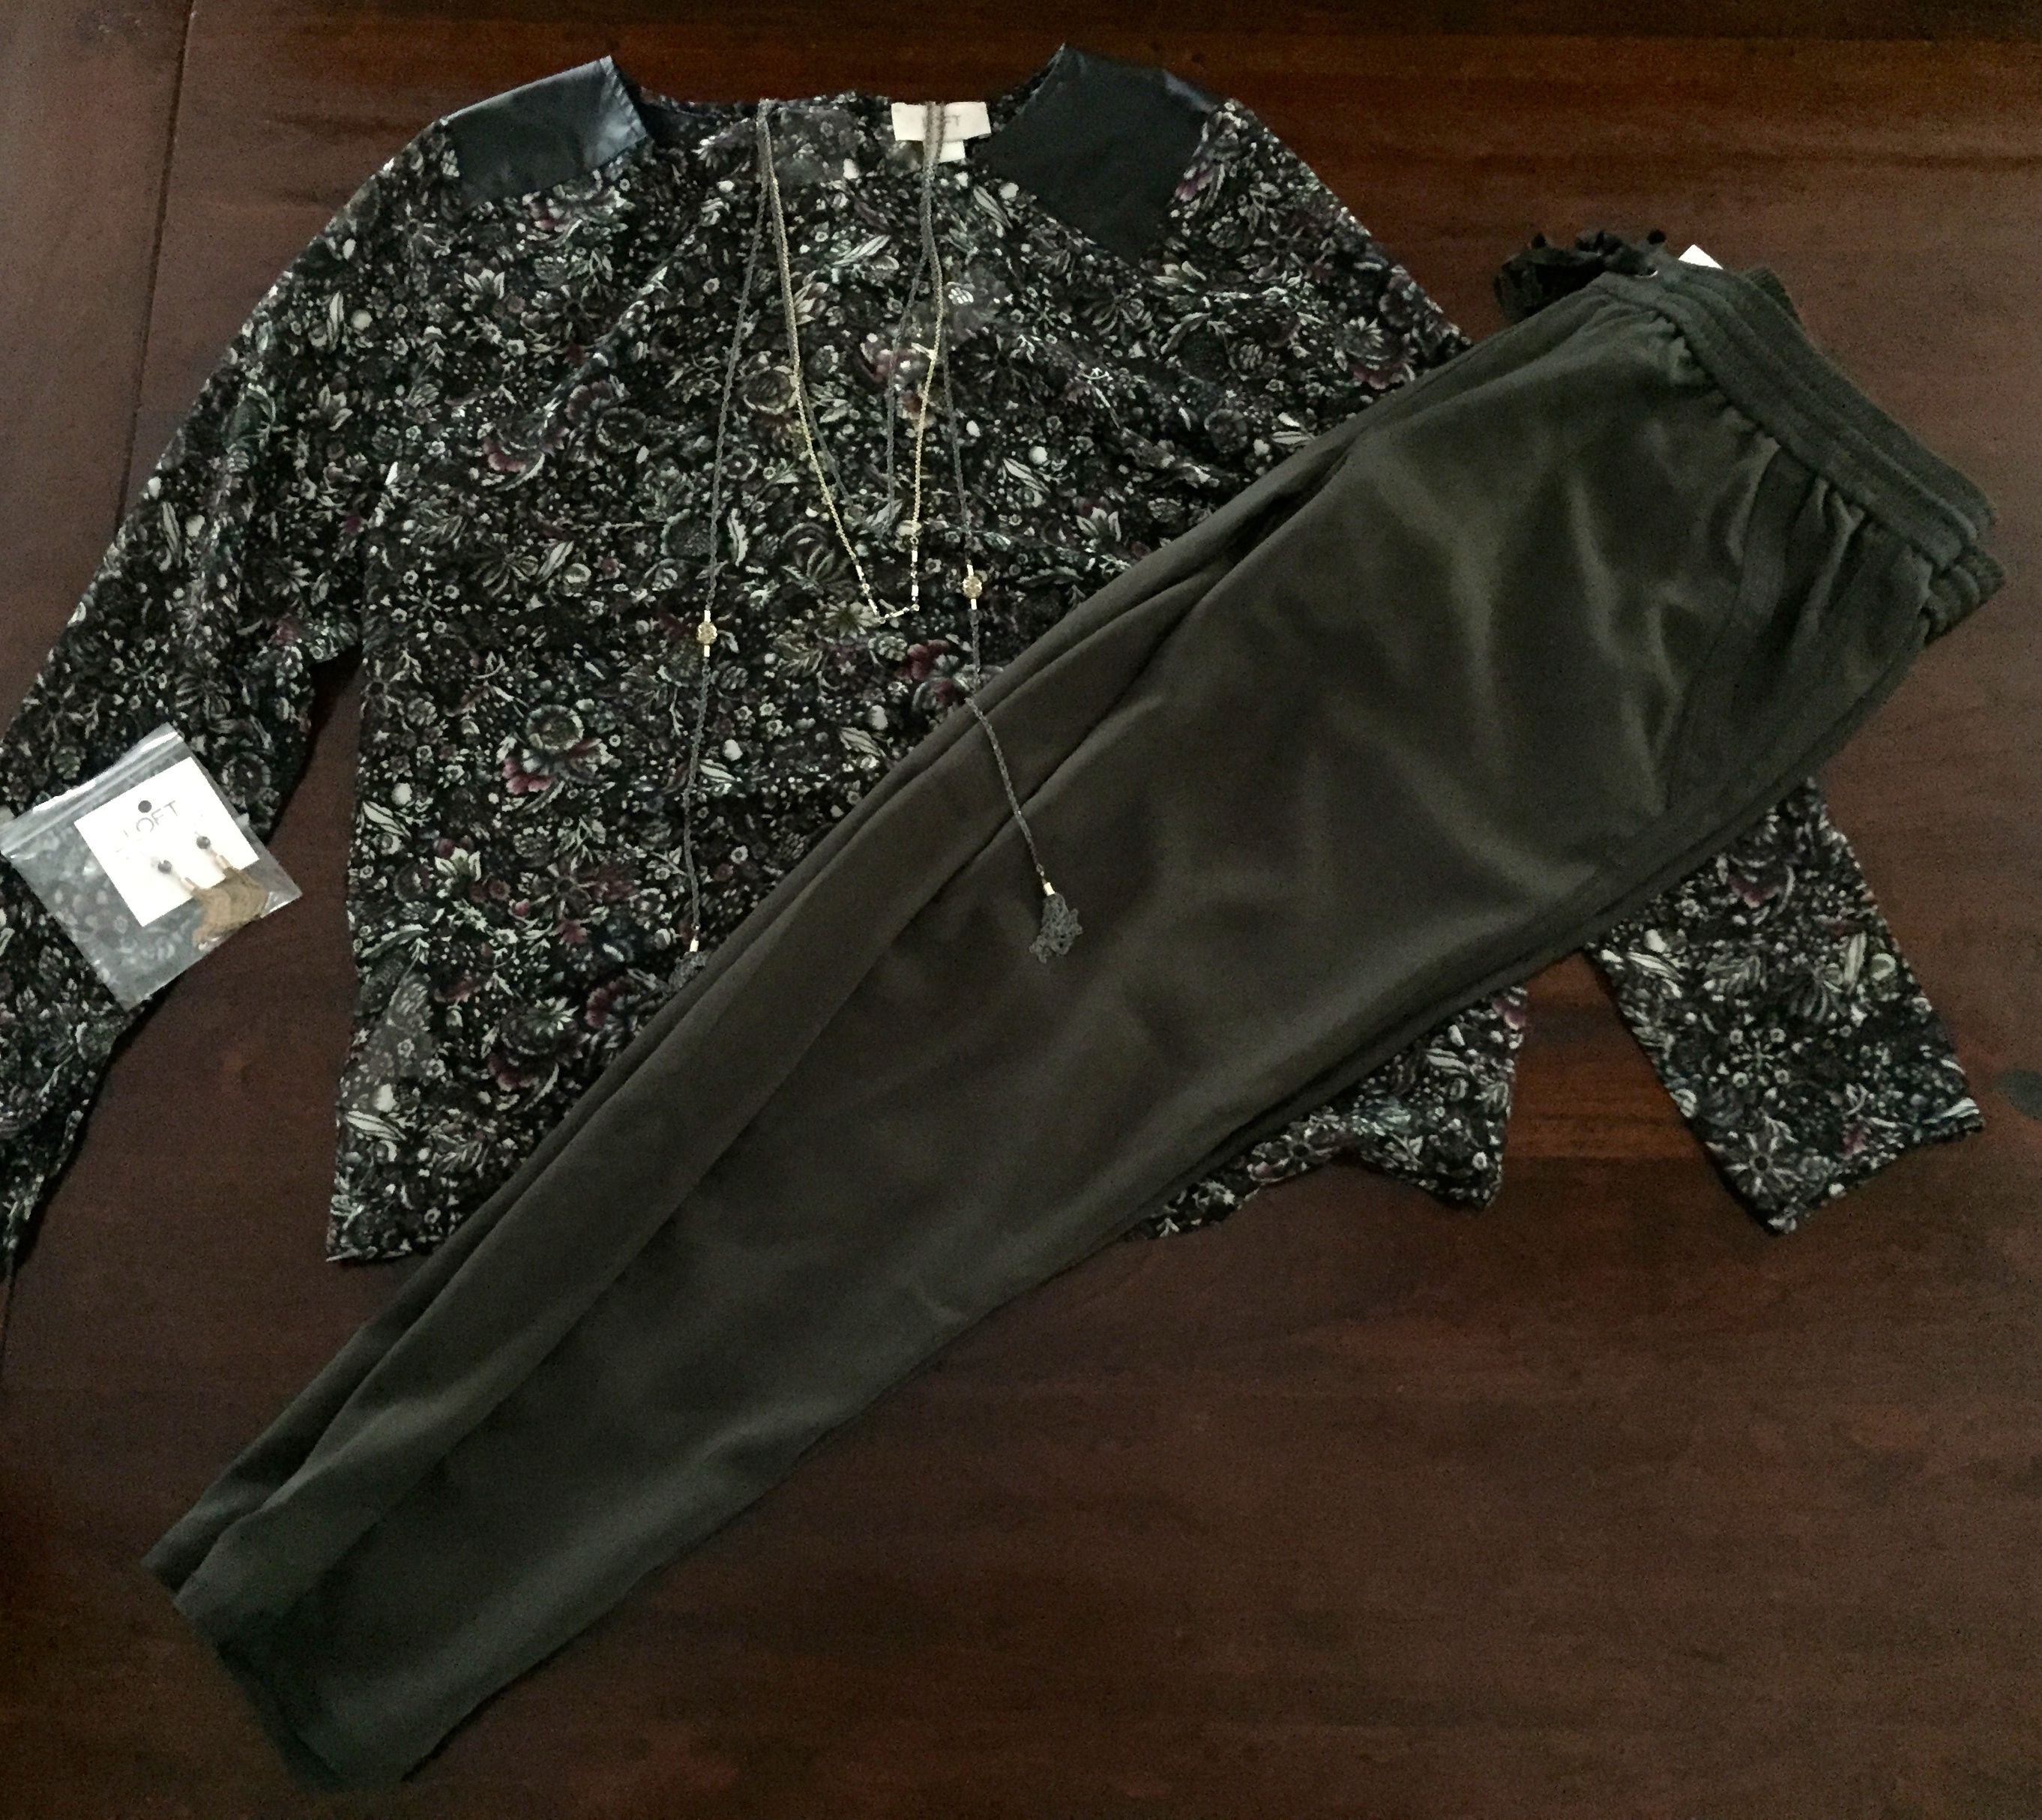 Floral Top w/ Leather Accent - The Loft. Olive Green Soft Pants - The Loft. Necklace & Earrings - The Loft.